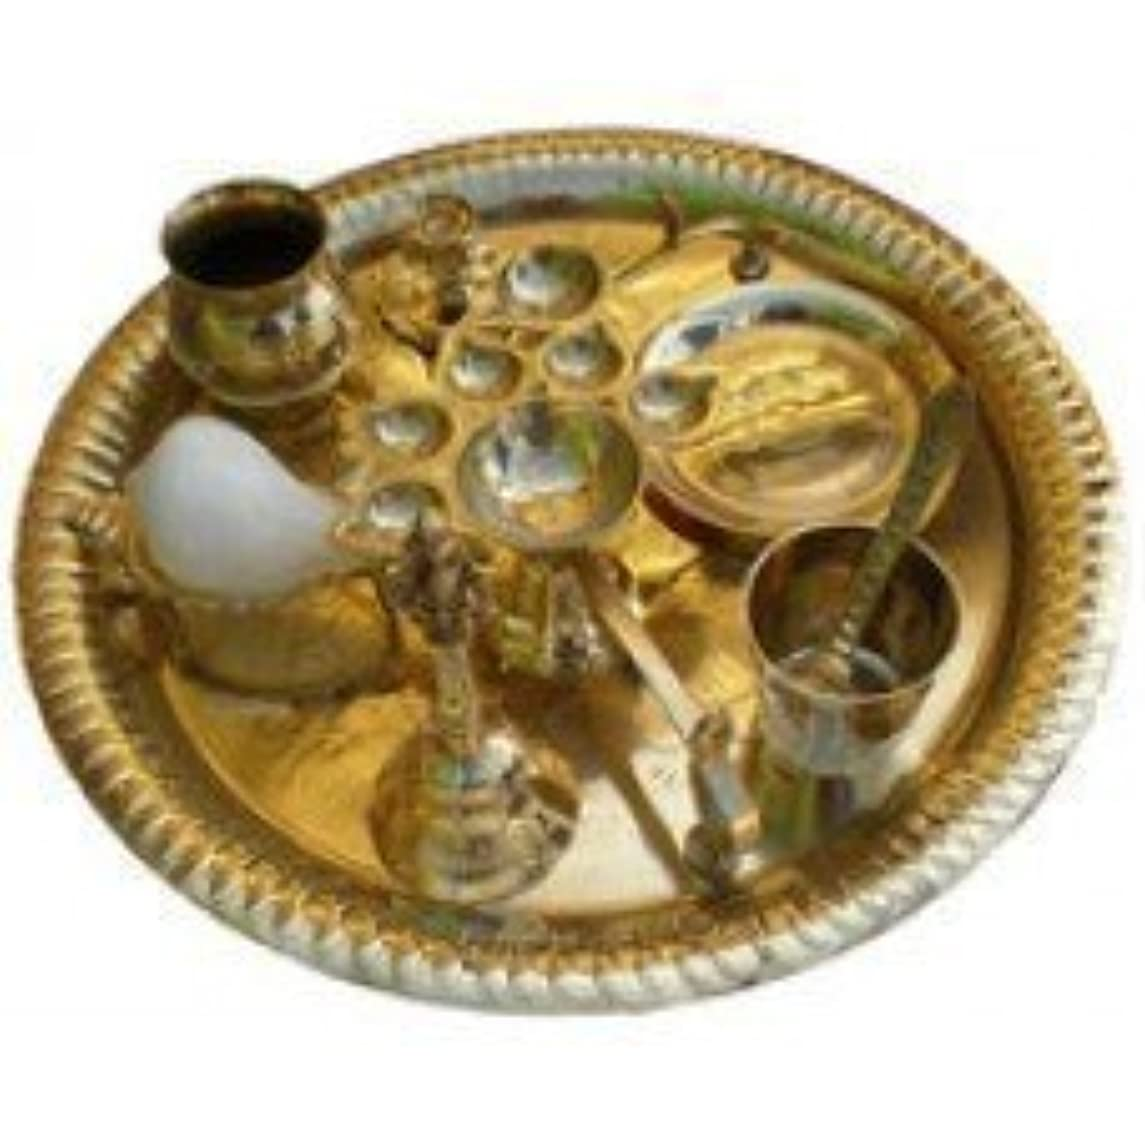 ホラー強化チキンAarti Set (tray with Bell, Incense Holder, Flower Tray, Conch, Ghee Lamps)